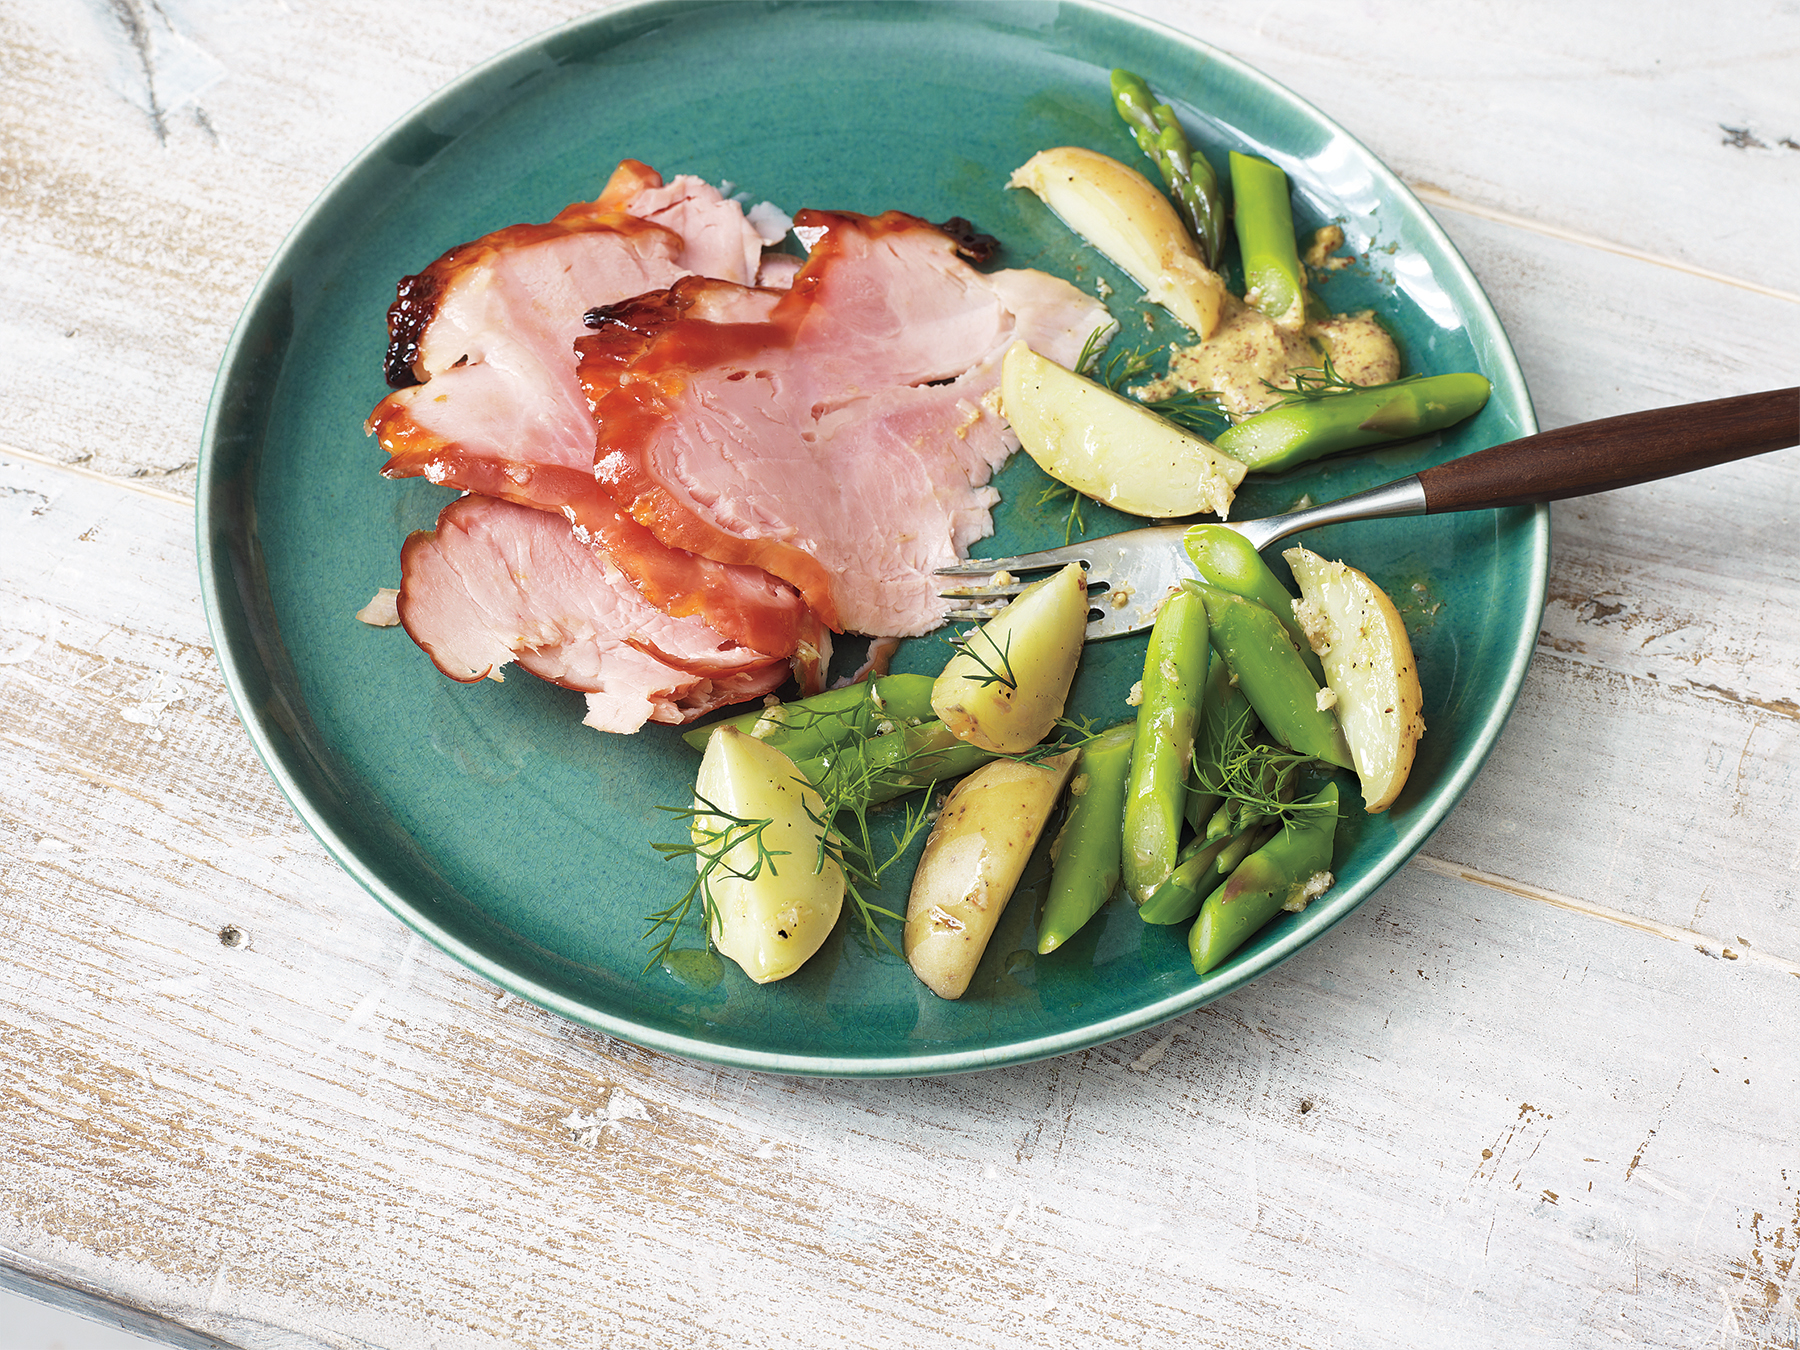 Apricot-Glazed Ham With Potatoes and Asparagus